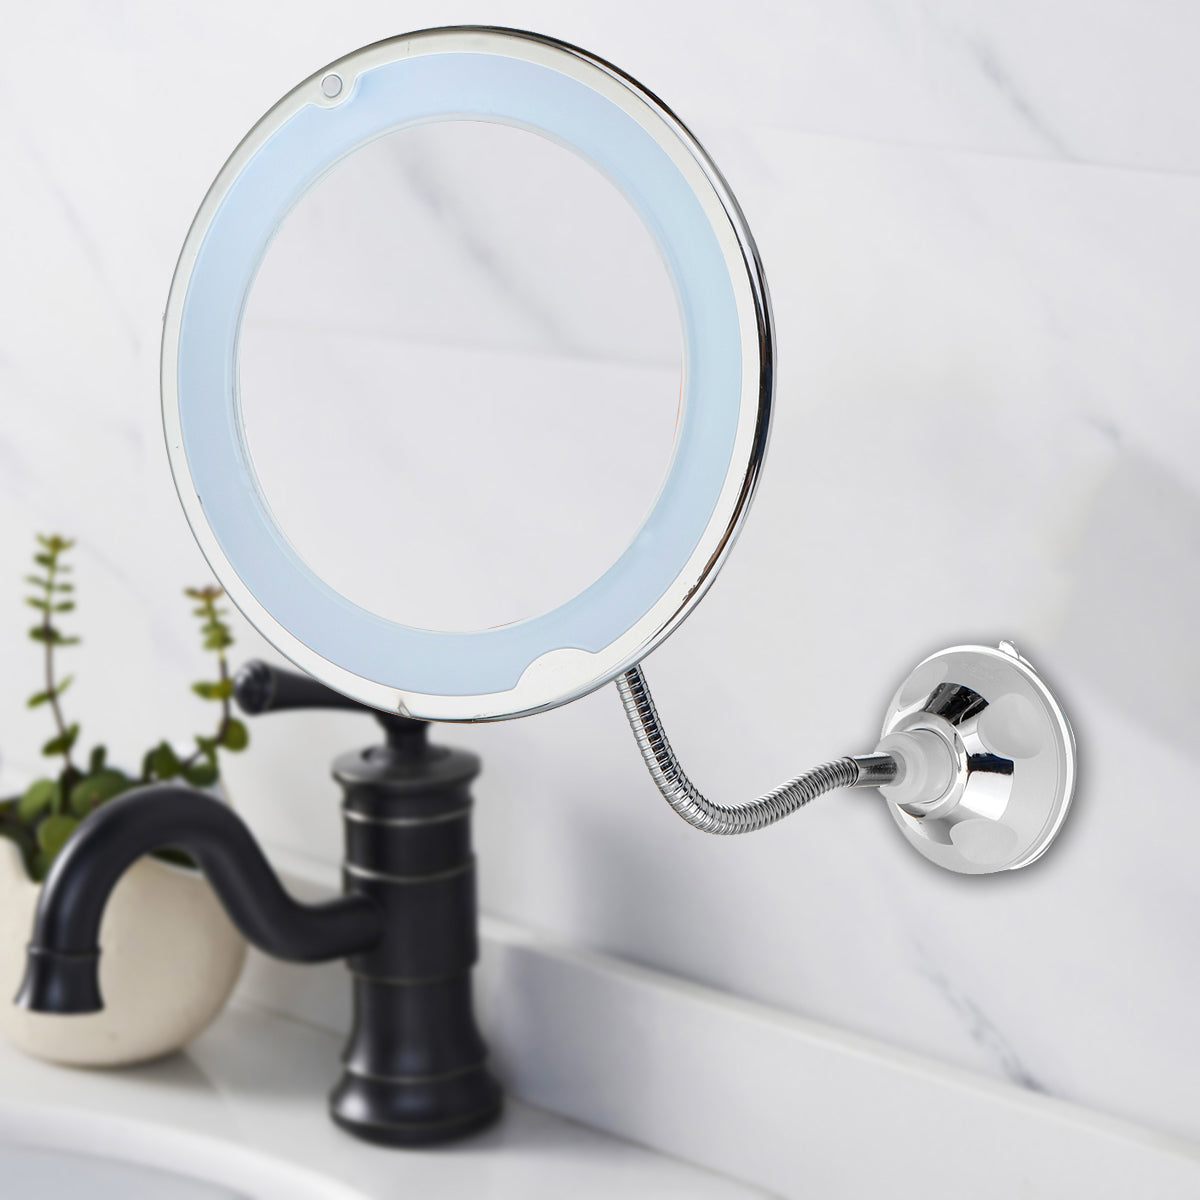 Magic Touches 10X Magnifying Flexible LED Makeup Mirror Light 360 Rotary Super Suction Mirror